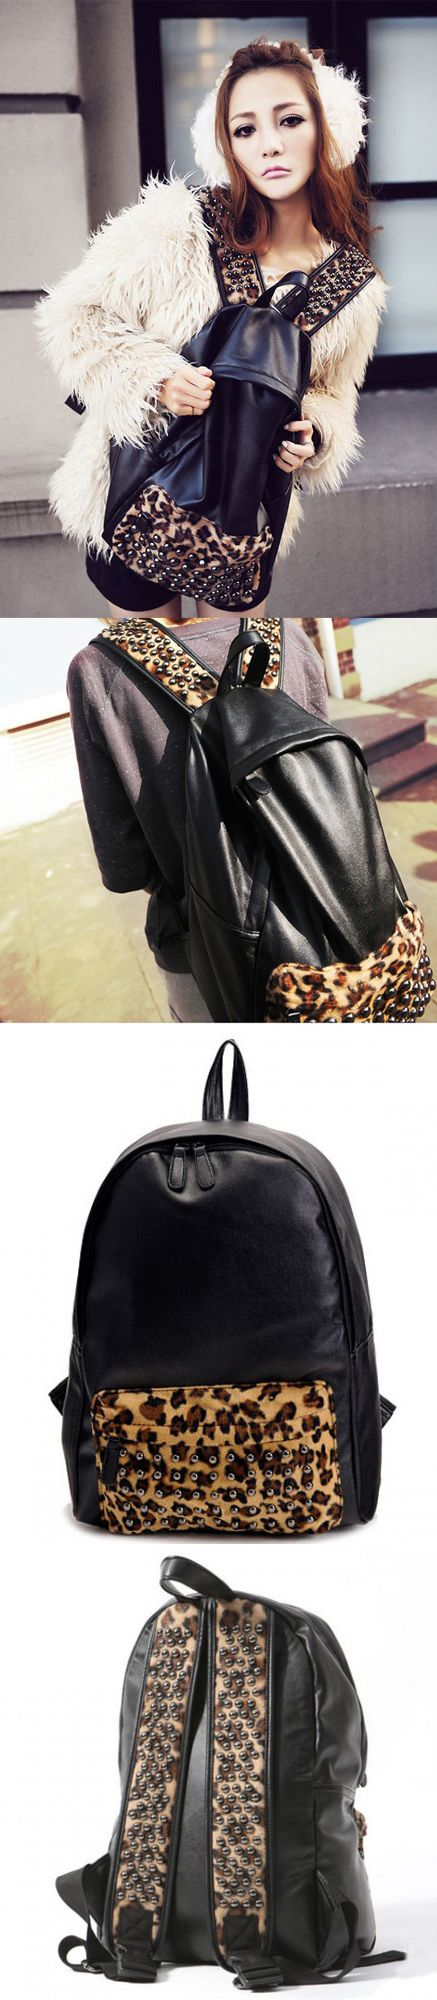 2017 Cute Punk Rivet Leopard Print Backpack for Girls backpack college laptops,backpack black,backpack black small,backpack black white,backpack black school,backpack men travel,backpack men,backpack men travel canvases,backpack men college,backpack men fashion,backpack men fashion style,backpack men fashion canvases,backpack men's laptop,school bags,school bags tote handbags,school bags tote style